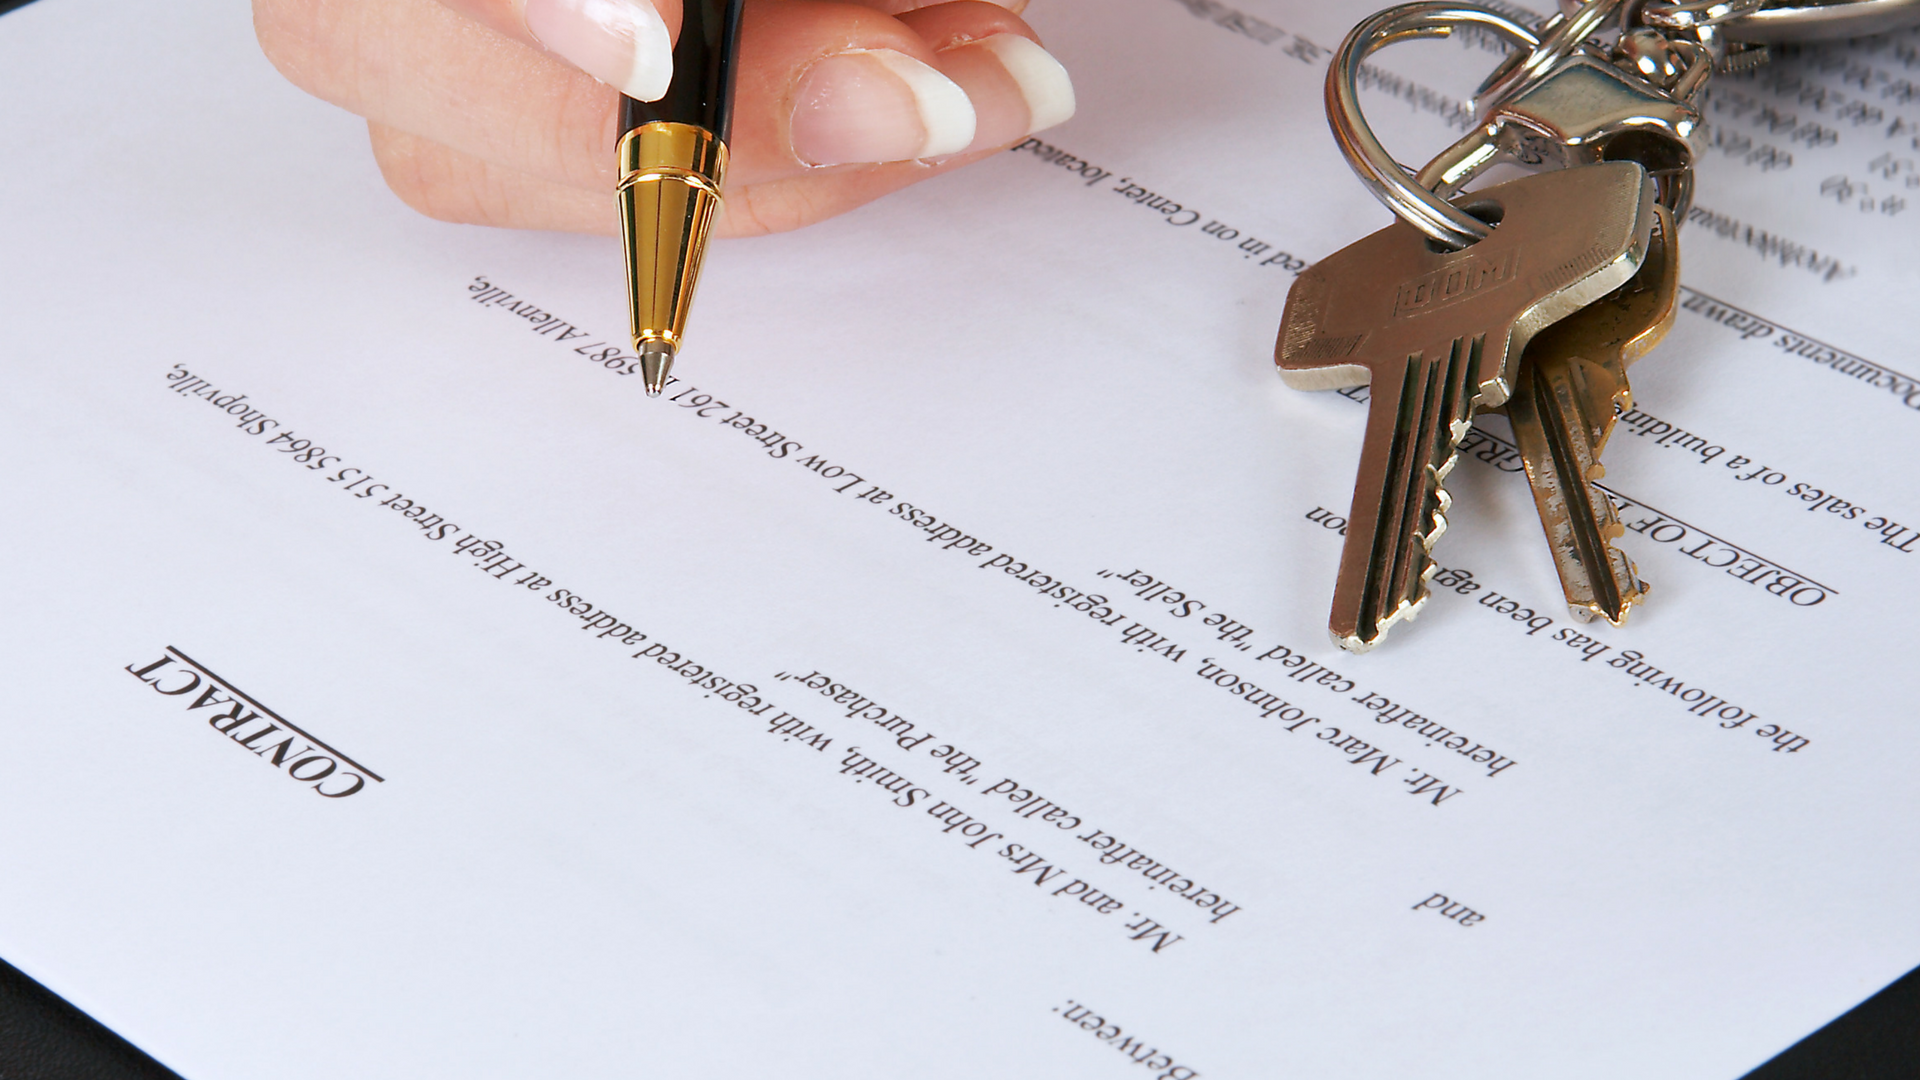 Seery Systems assists the Title and Mortgage Industry